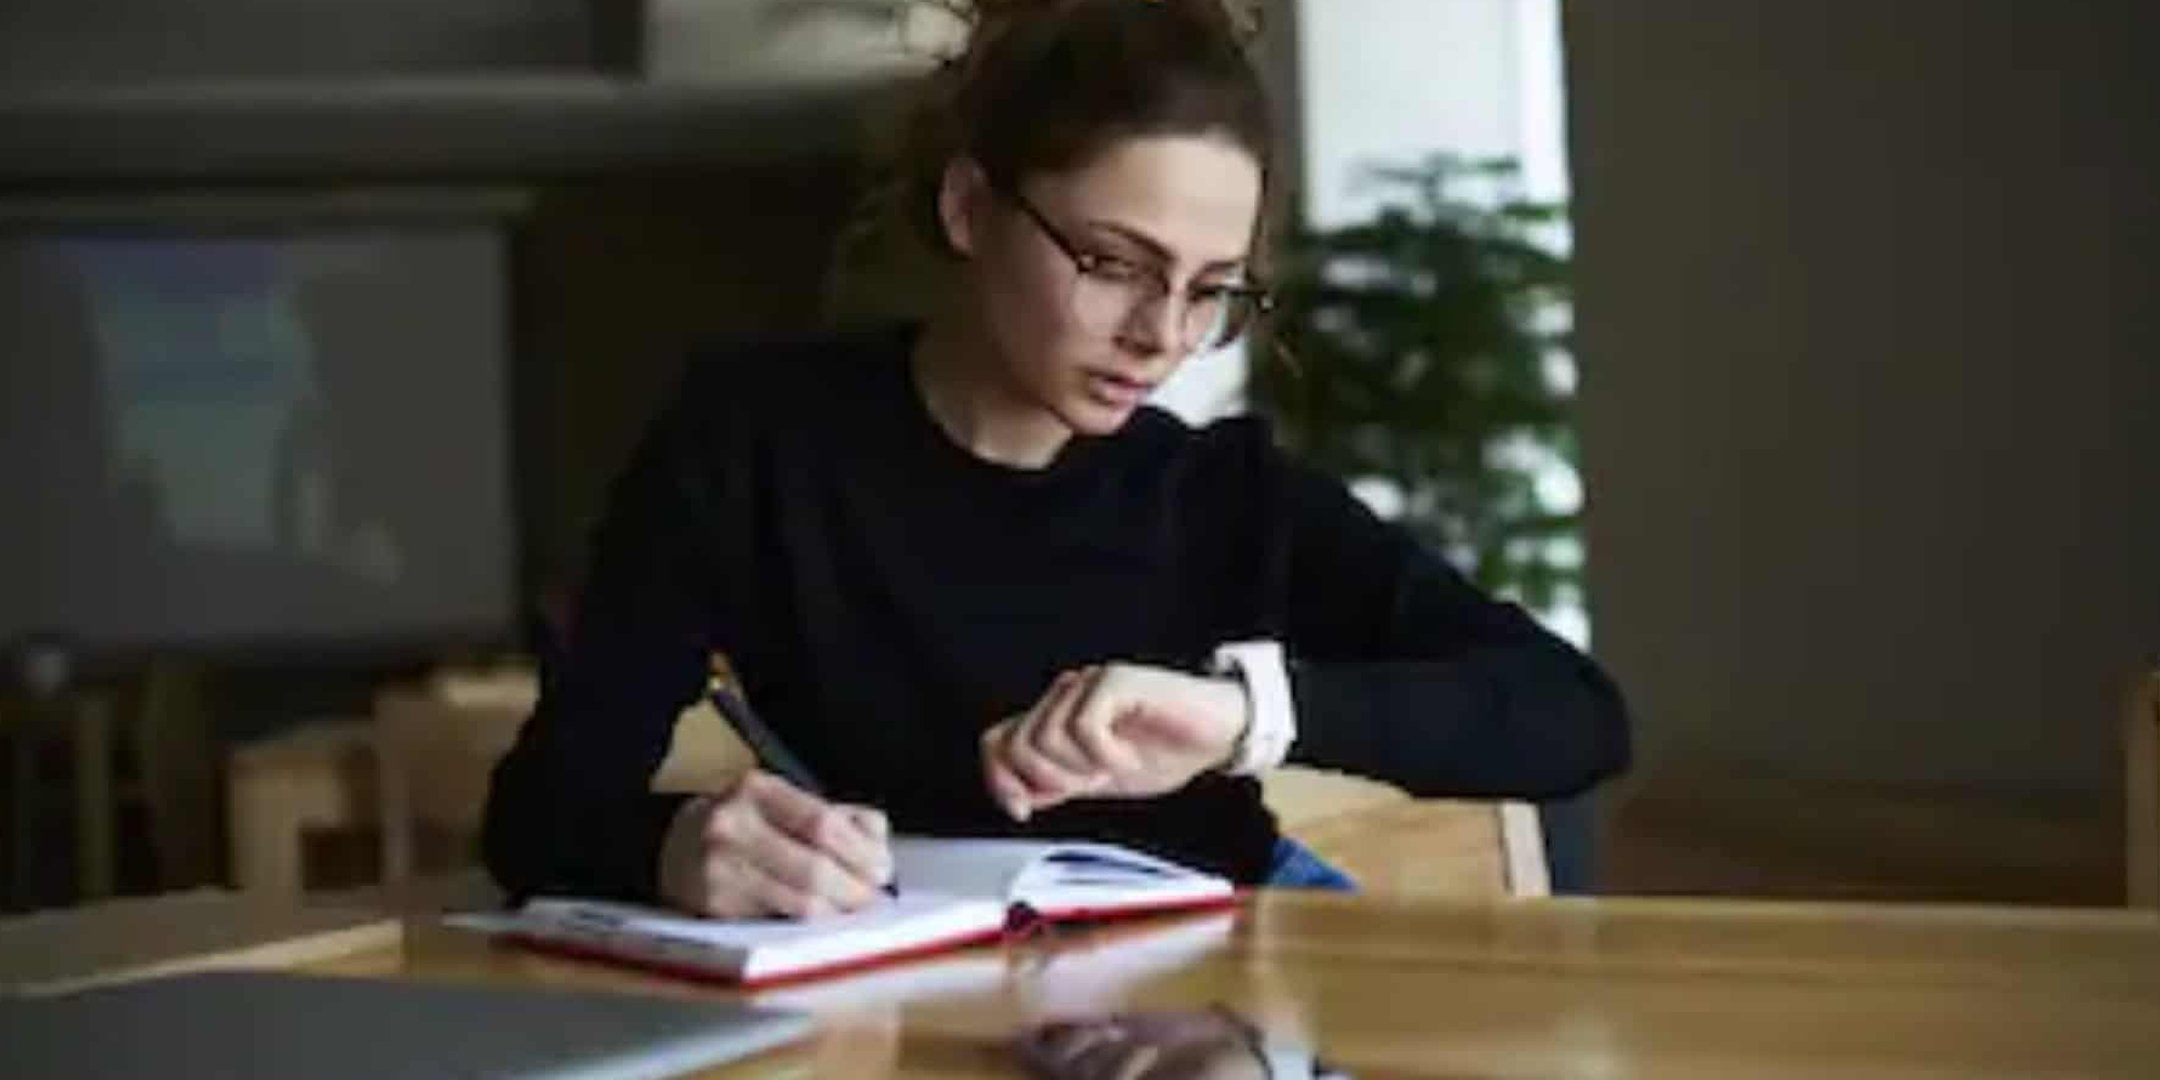 A woman looking at the time on her watch whilst writing a to-do list.